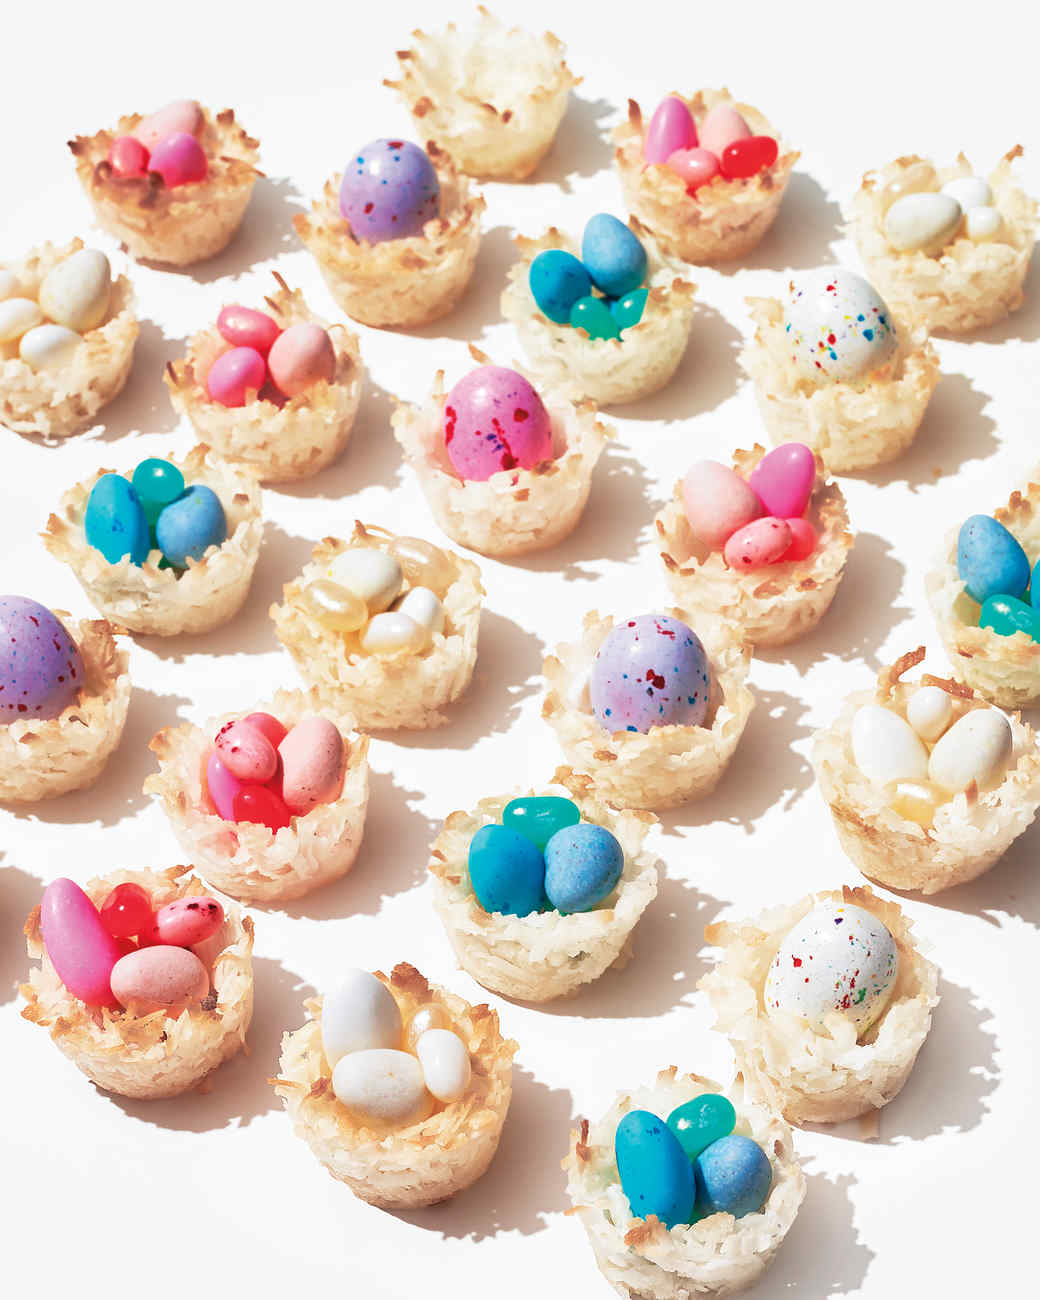 recipe: meringue cookies recipe martha stewart [7]